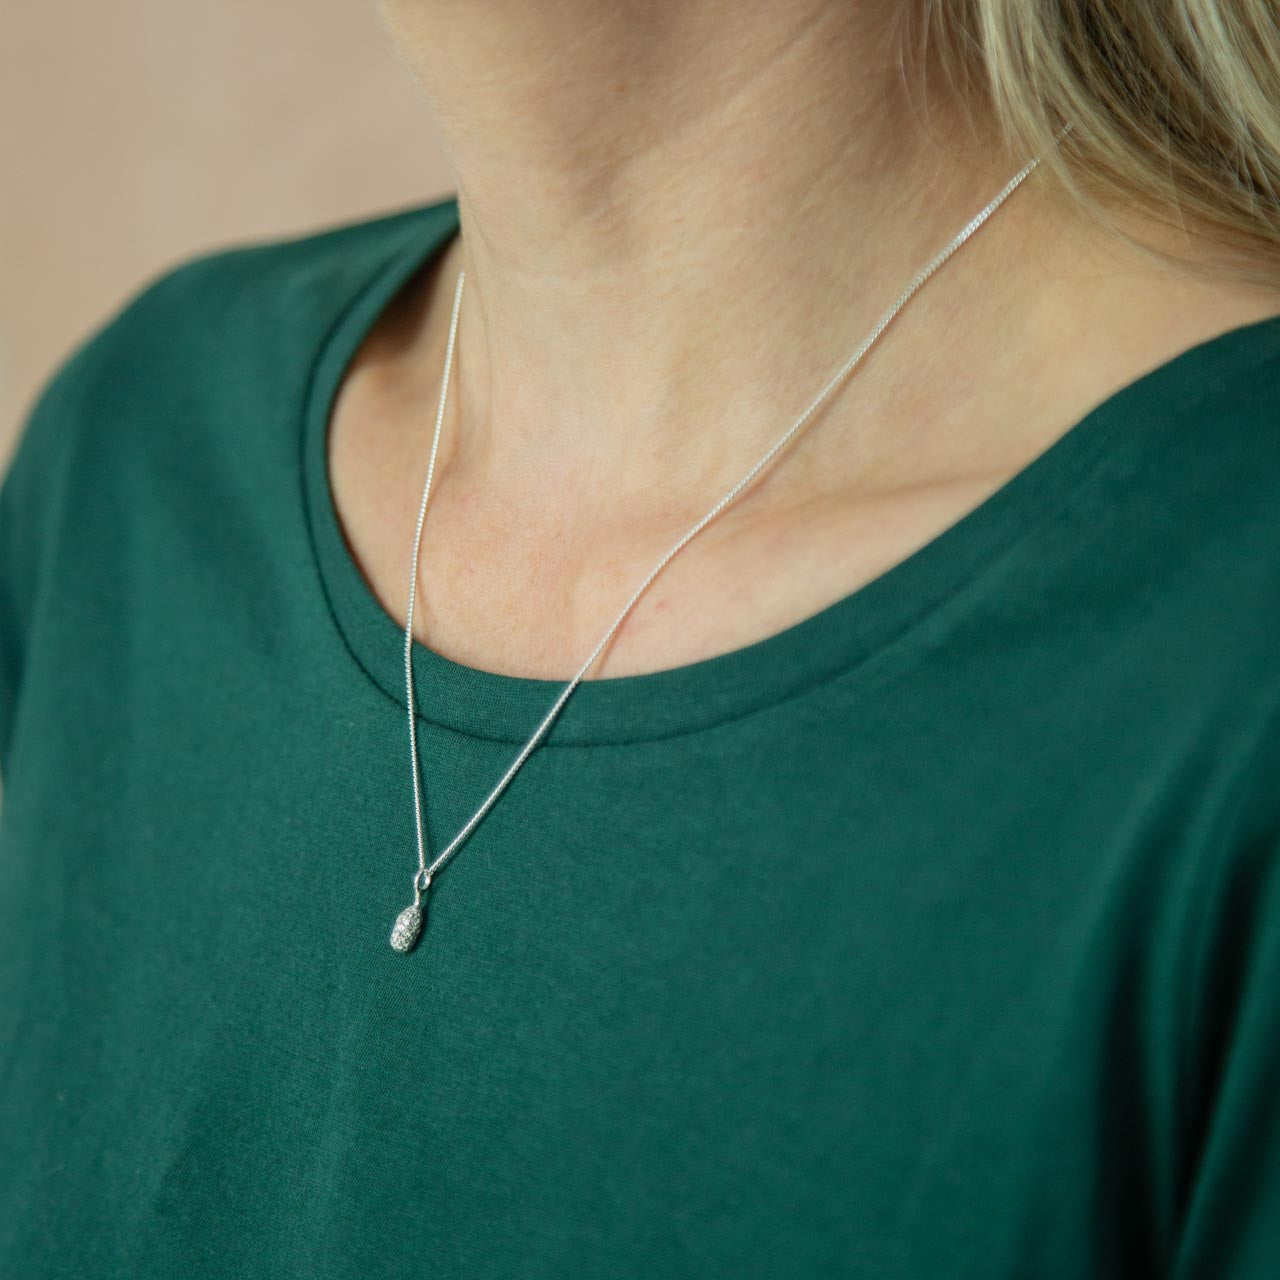 silver Spruce Drop Pendant modelled around neck on green t-shirt